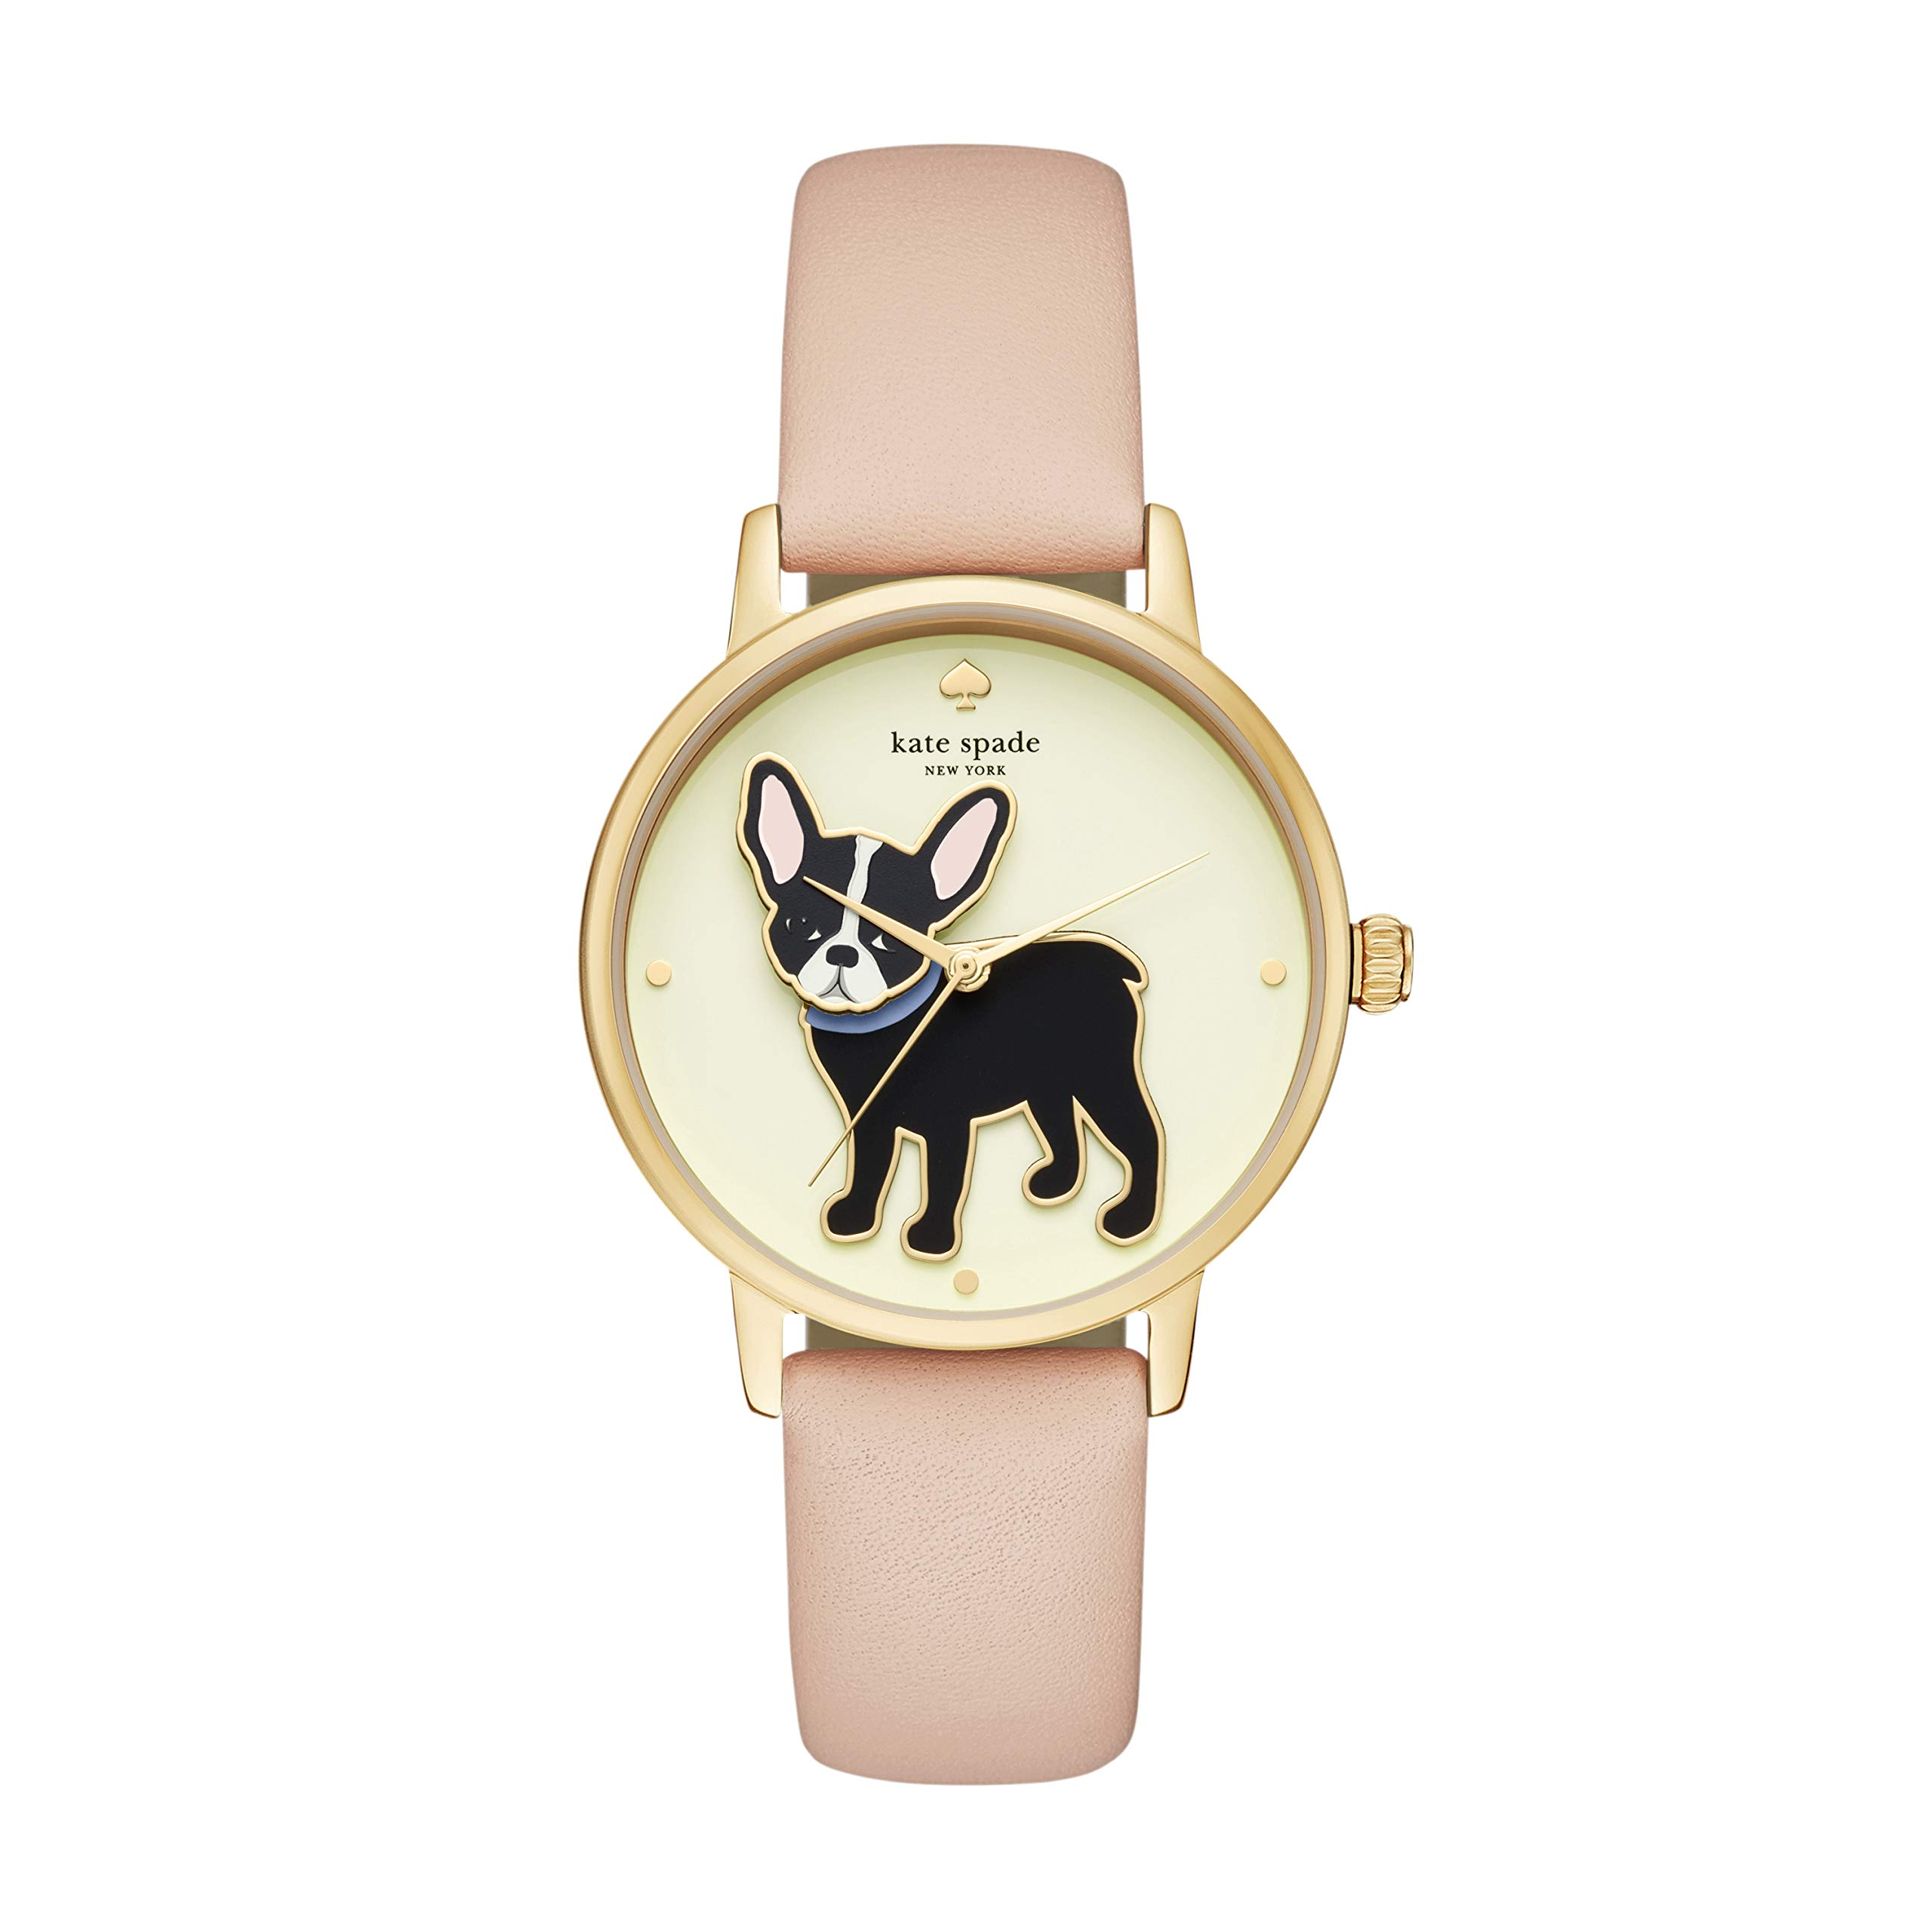 kate spade new york Women's 'Grand Metro' Quartz Stainless Steel and Leather Casual Watch, Color:Beige Band,Gold Dial(Model: KSW1345)